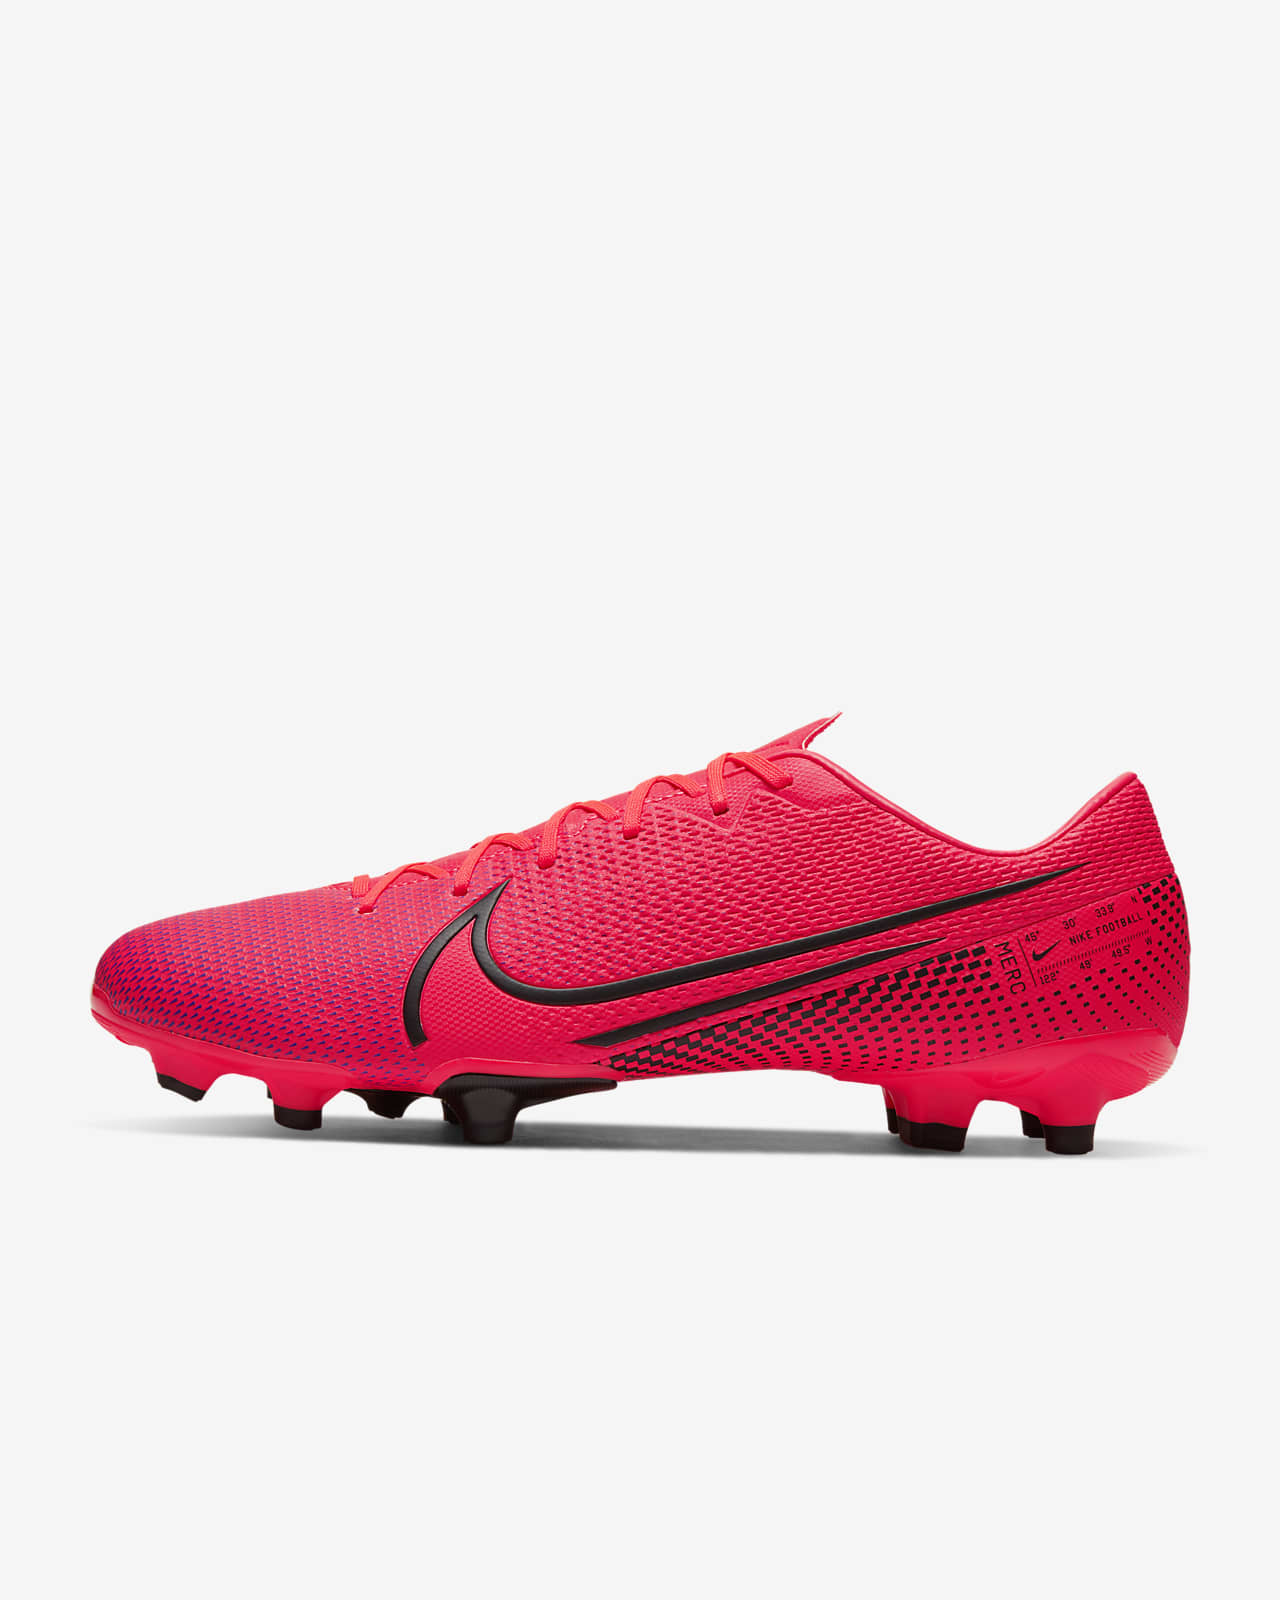 Nike Mercurial Vapor 13 Academy MG Multi-Ground Soccer Cleat